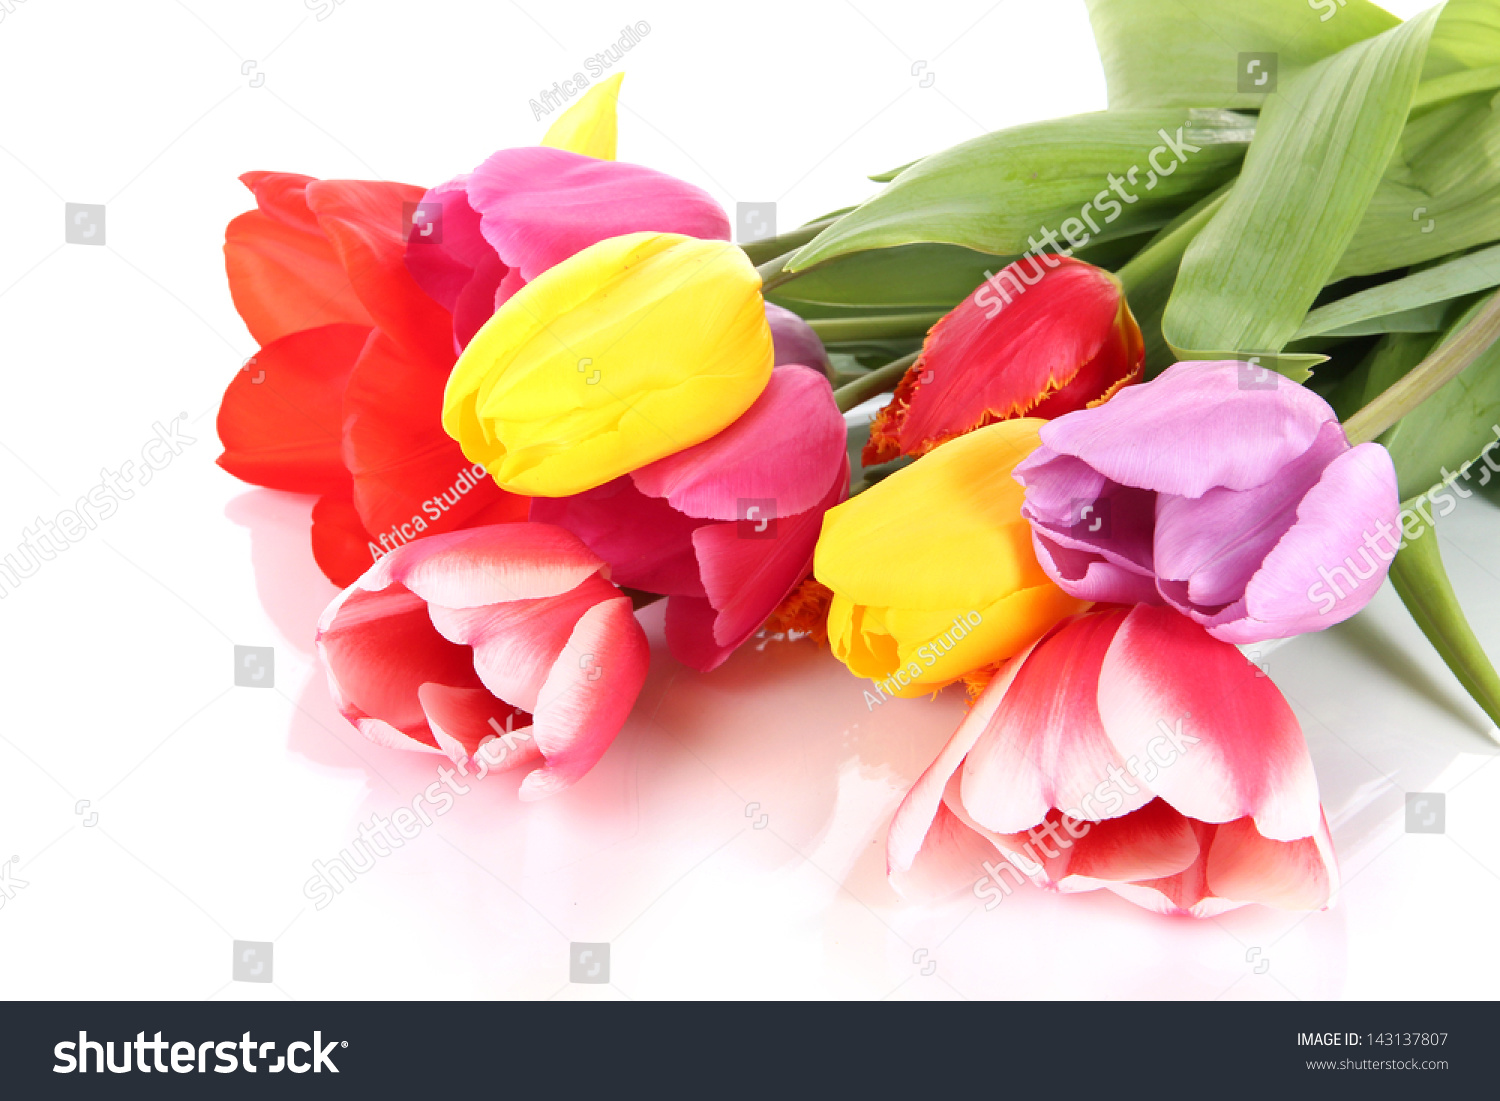 Beautiful tulips in bouquet isolated on white ez canvas id 143137807 izmirmasajfo